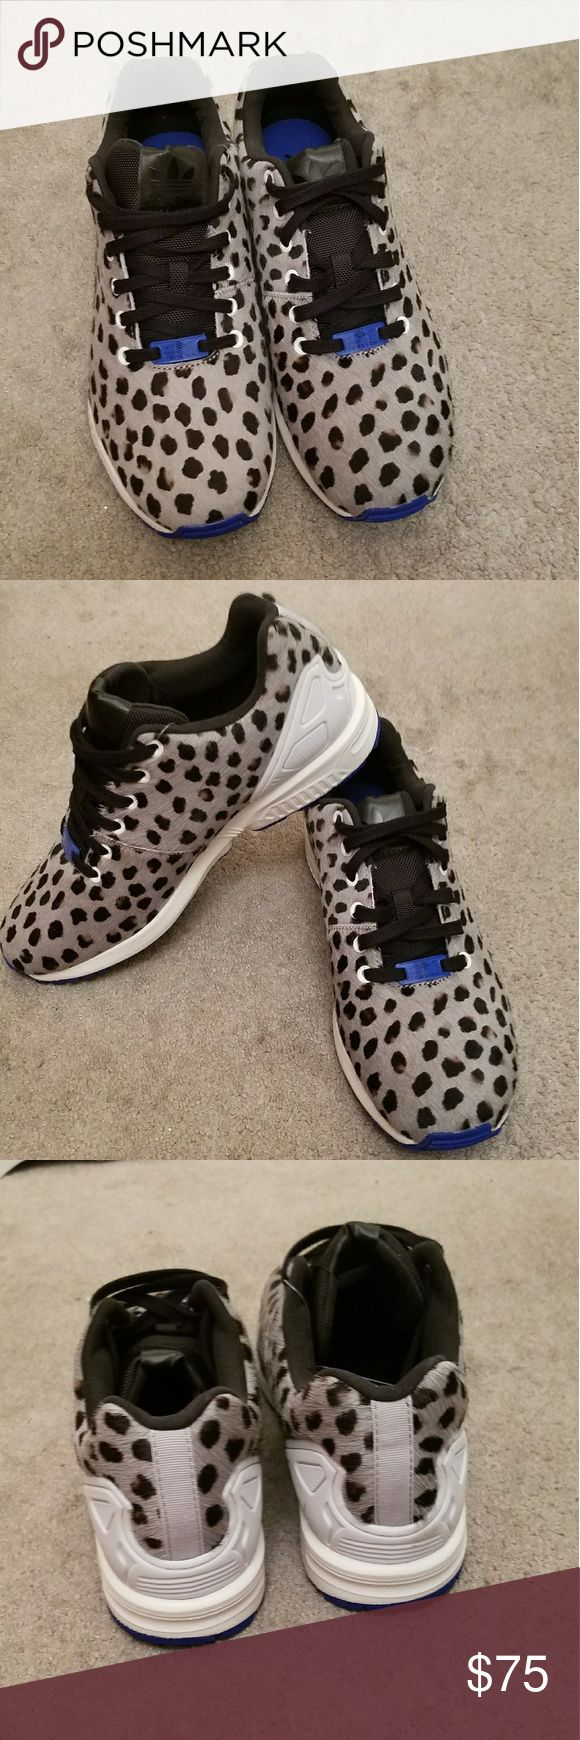 Adidas ZX Flux Leopard Print  Adidas Originals ZX Flux Style: S79084 Tan and Black Men's Size: 8.5 Brand New, Never Used Guaranteed Authentic. Does not come with box. adidas Shoes Sneakers